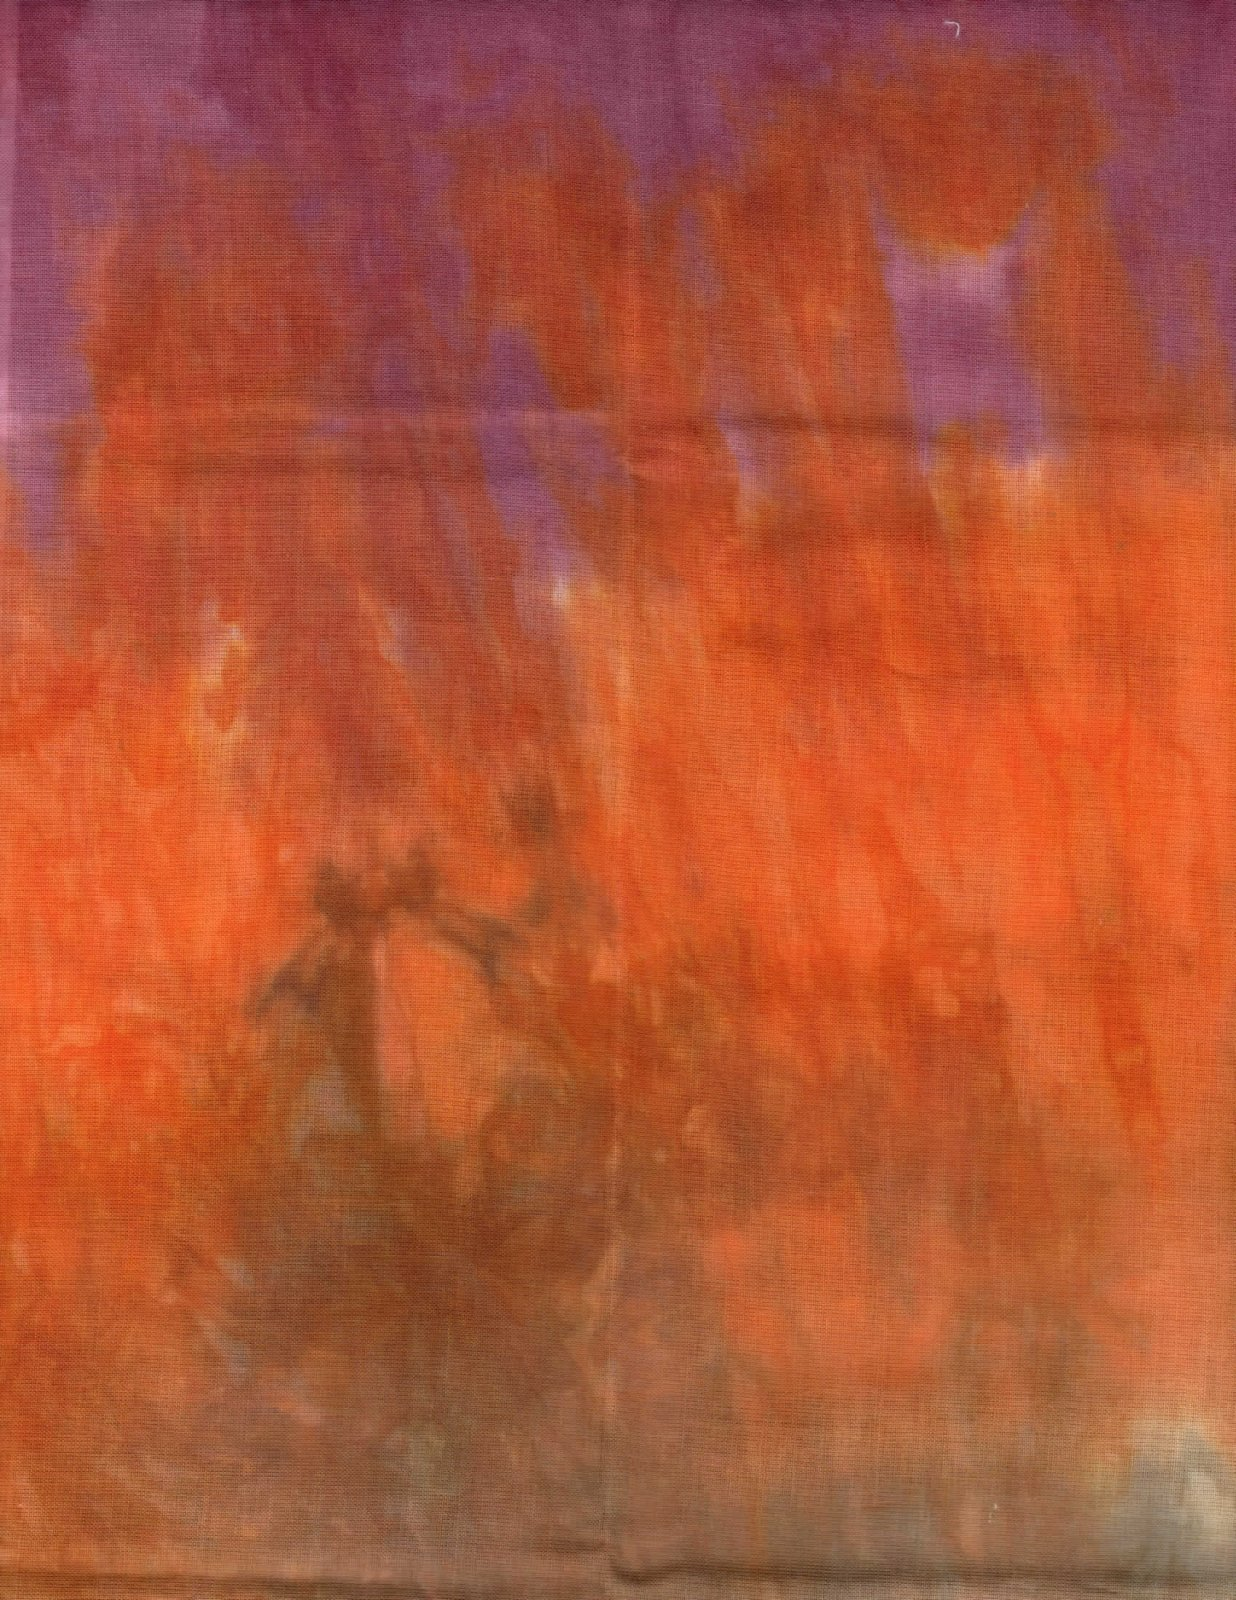 Russet Hand-Dyed Organdy FQ